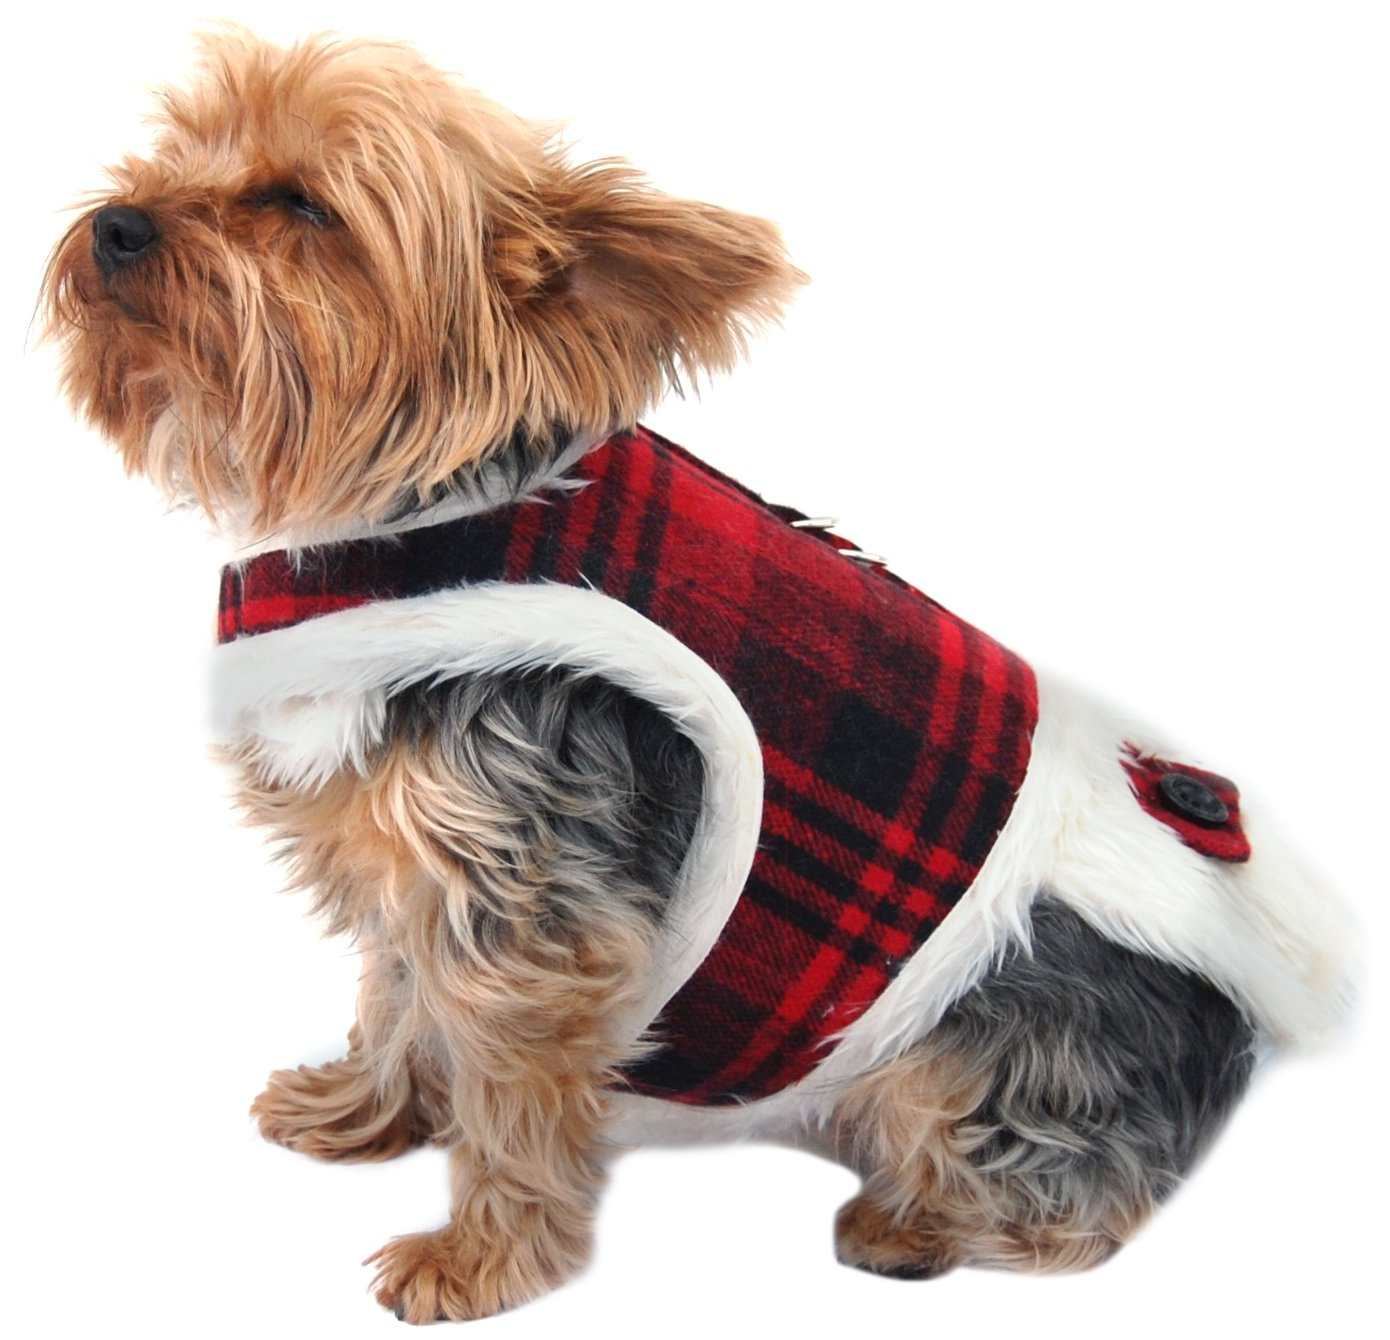 Anima Red Plaid Fur Lined Winter Harness Dress, Large